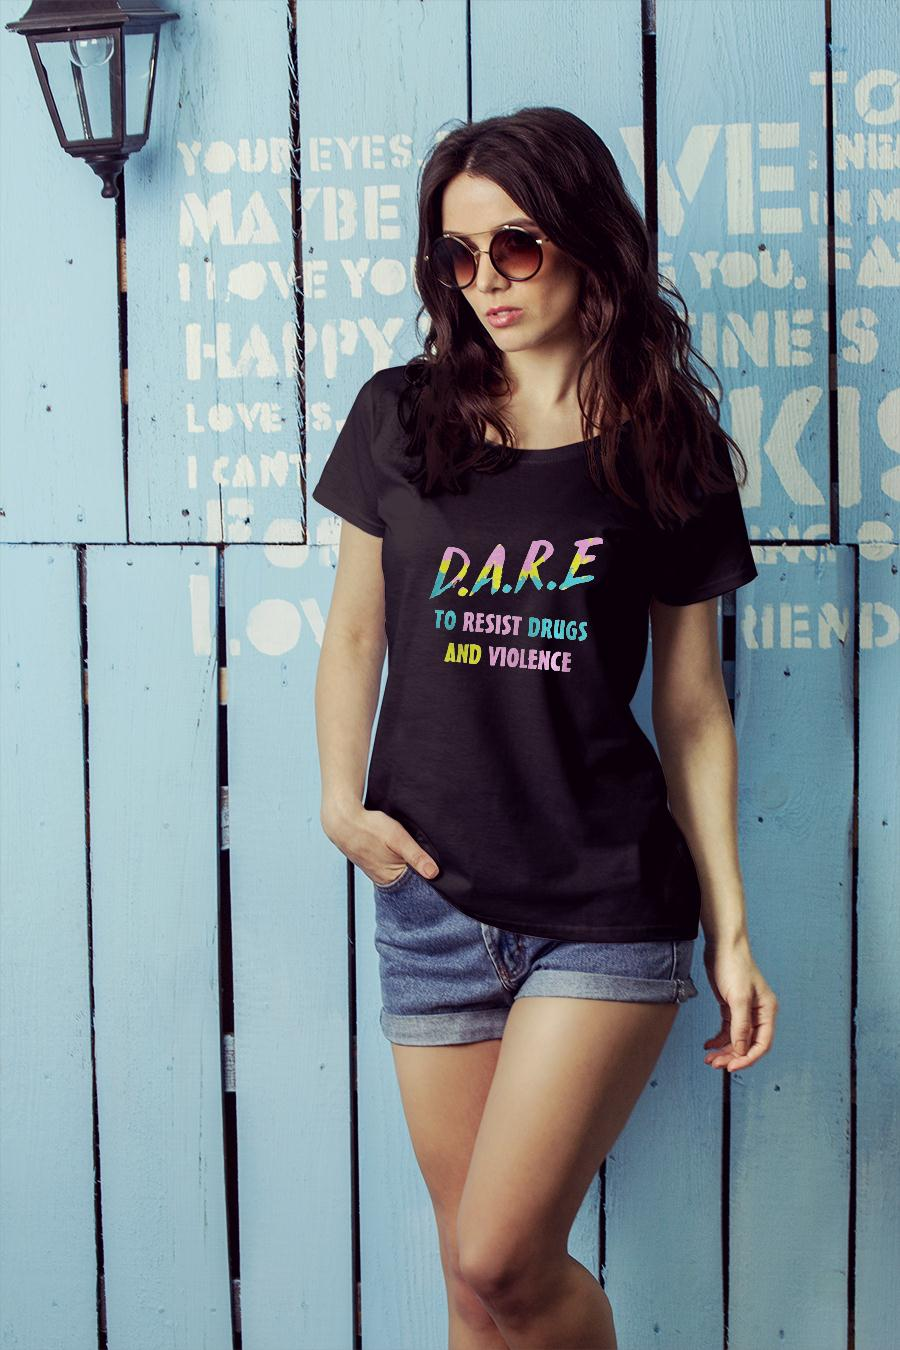 DARE TO RESIST DRUGS AND VIOLENCE COLORFUL SHIRT ladies tee official